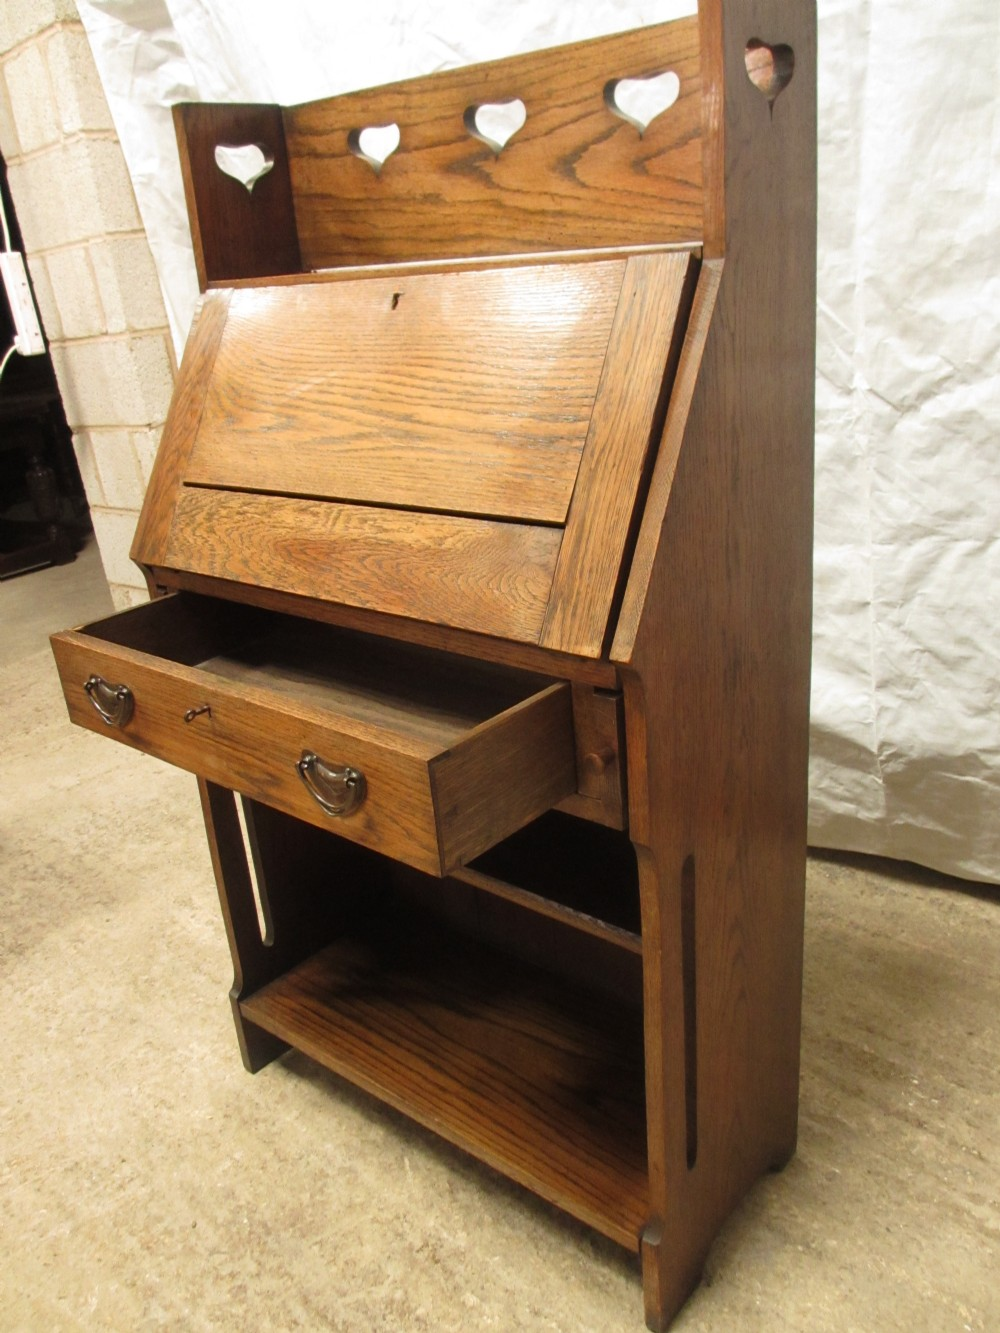 edwardian golden oak art nouveau bureau bookcase 261926. Black Bedroom Furniture Sets. Home Design Ideas